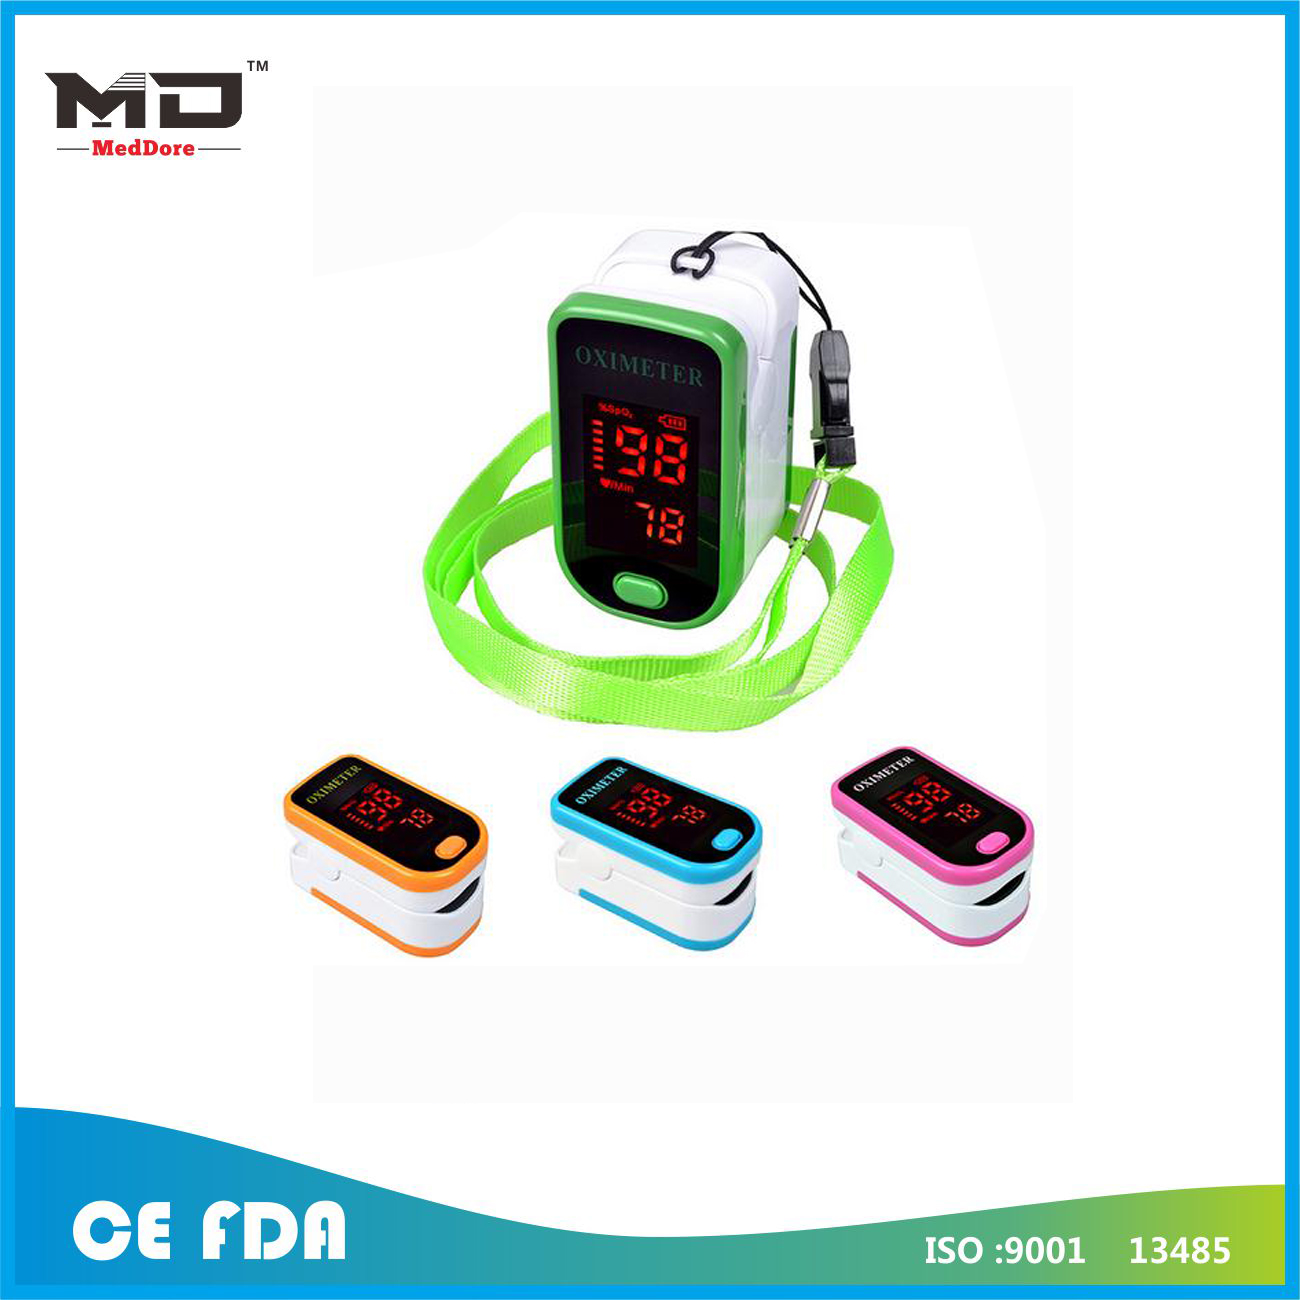 Digital LED Fingertip Pulse Oximeter Blood Oxygen SpO2 Saturation Oximeter Monitor Oximetry Pulsomet